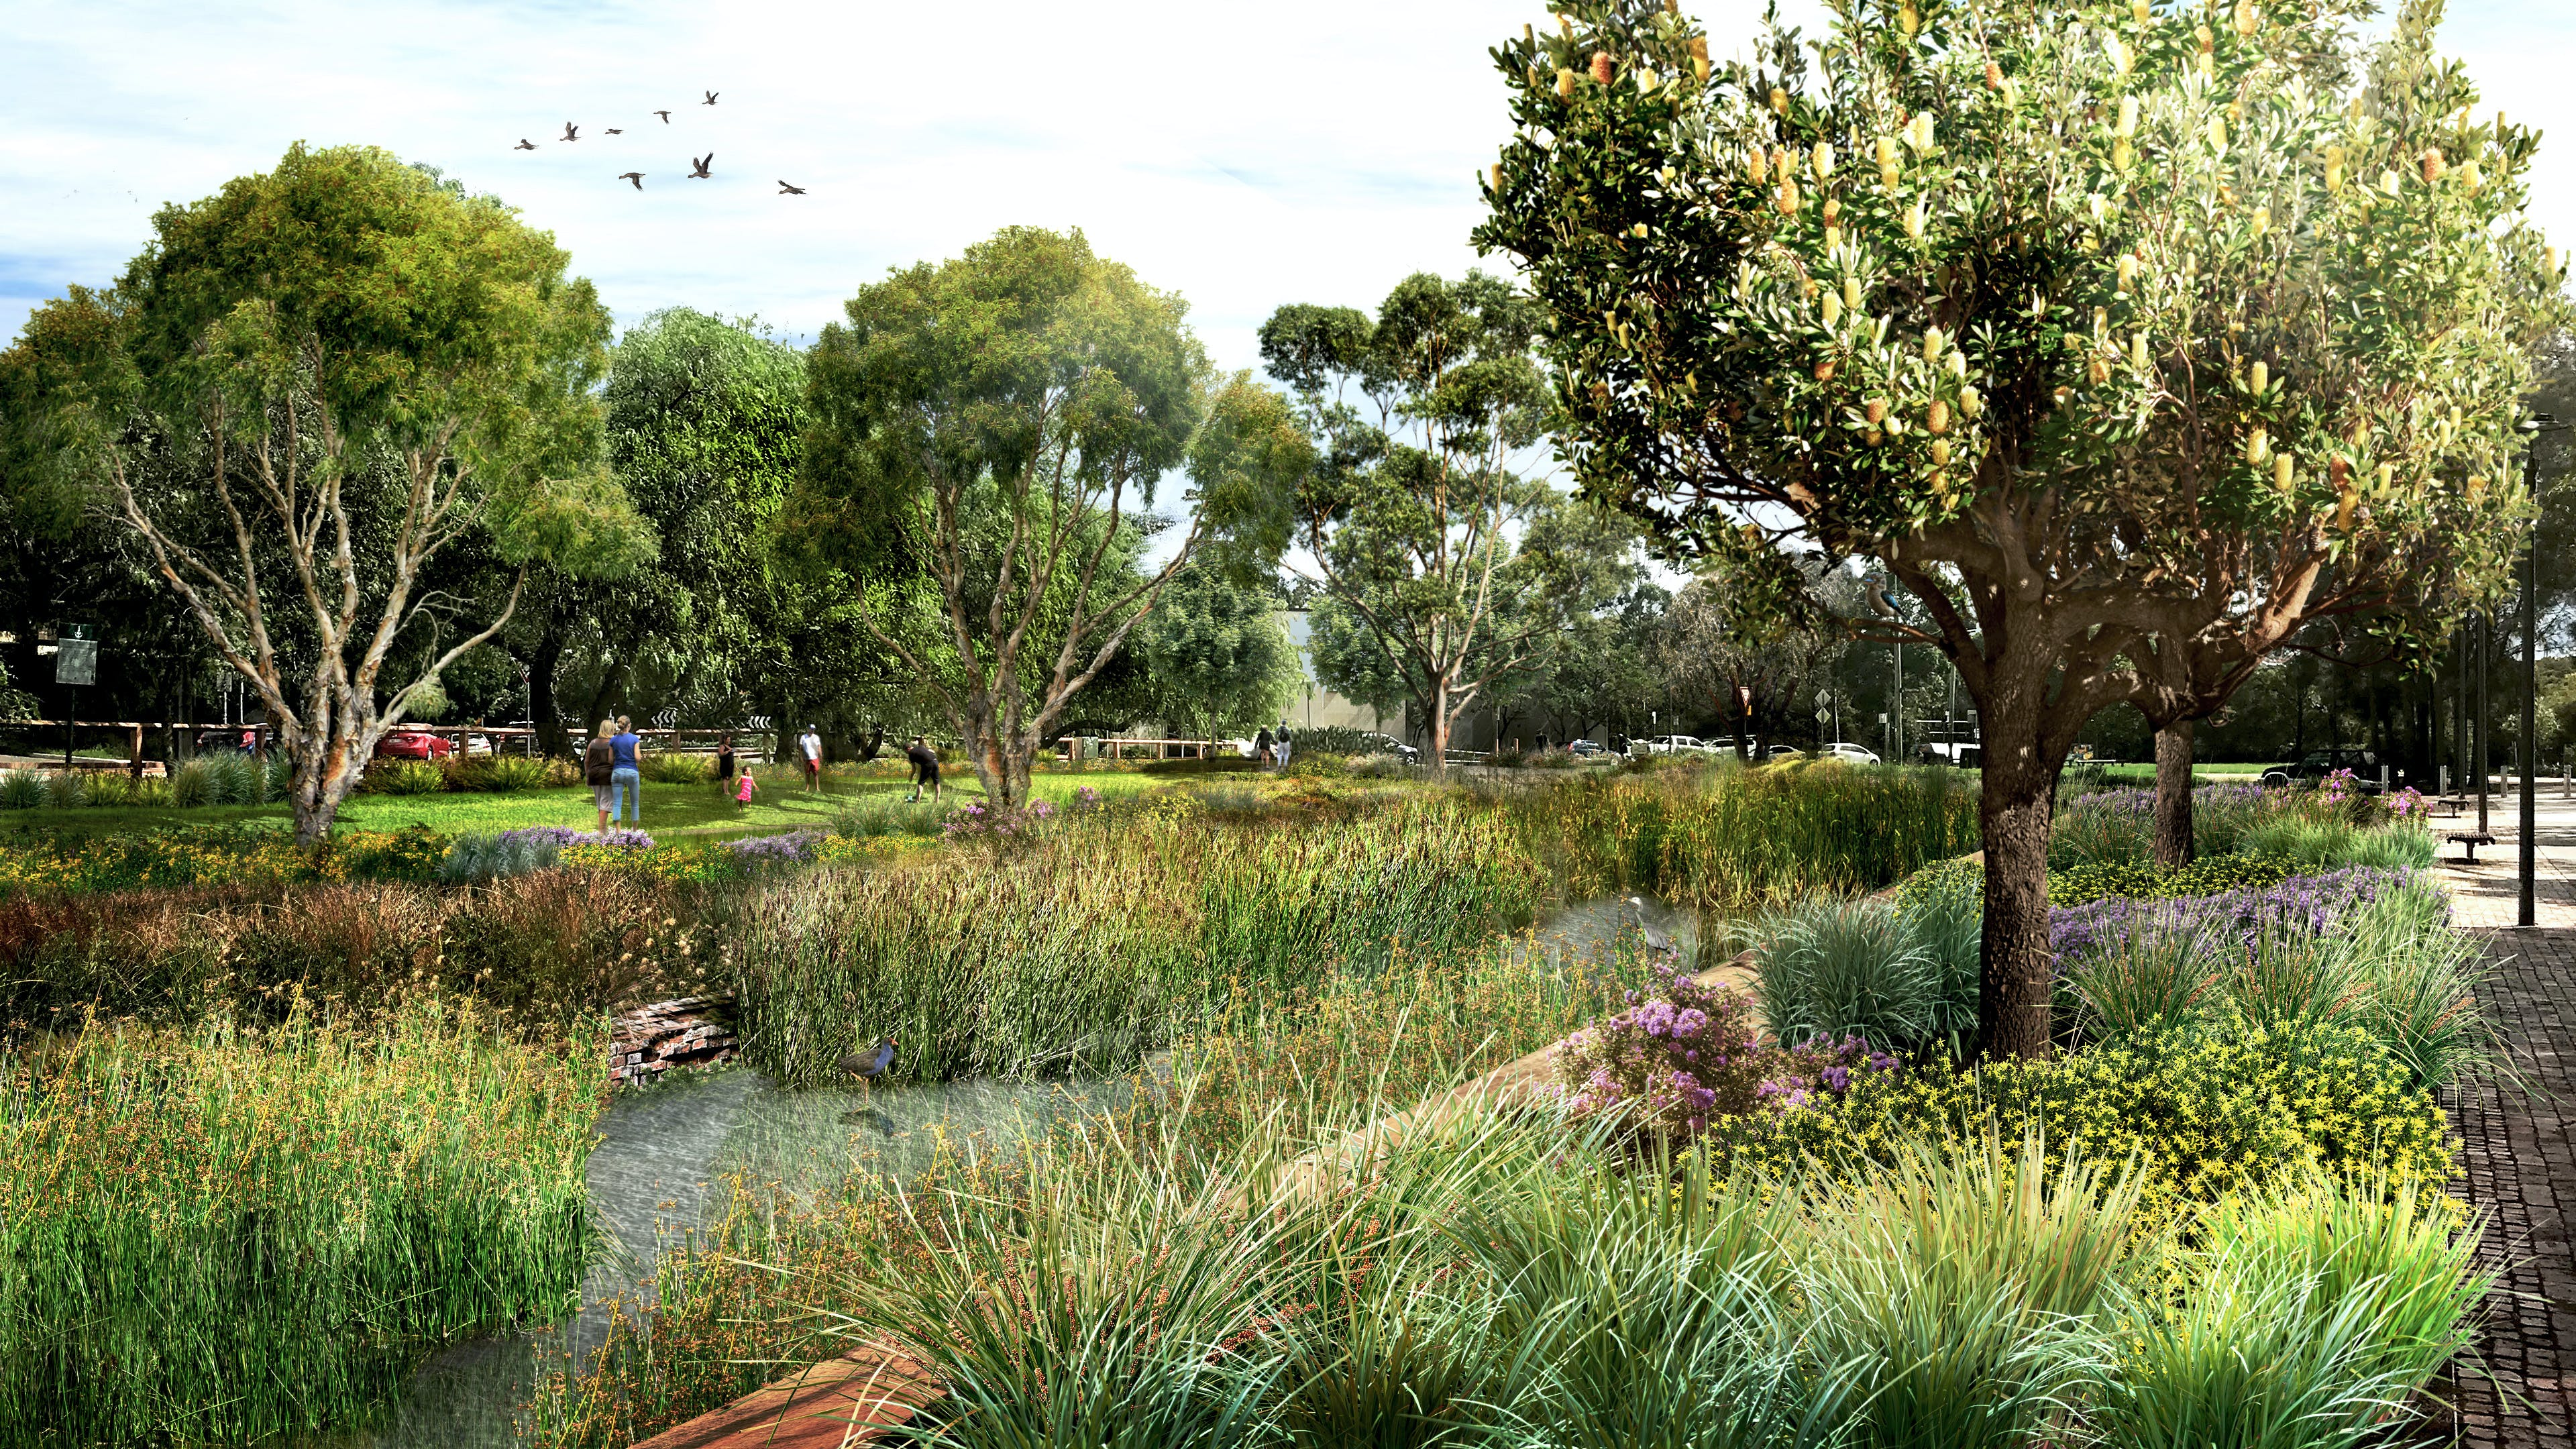 An artist's impression of Federal Park once the wetland has been created.